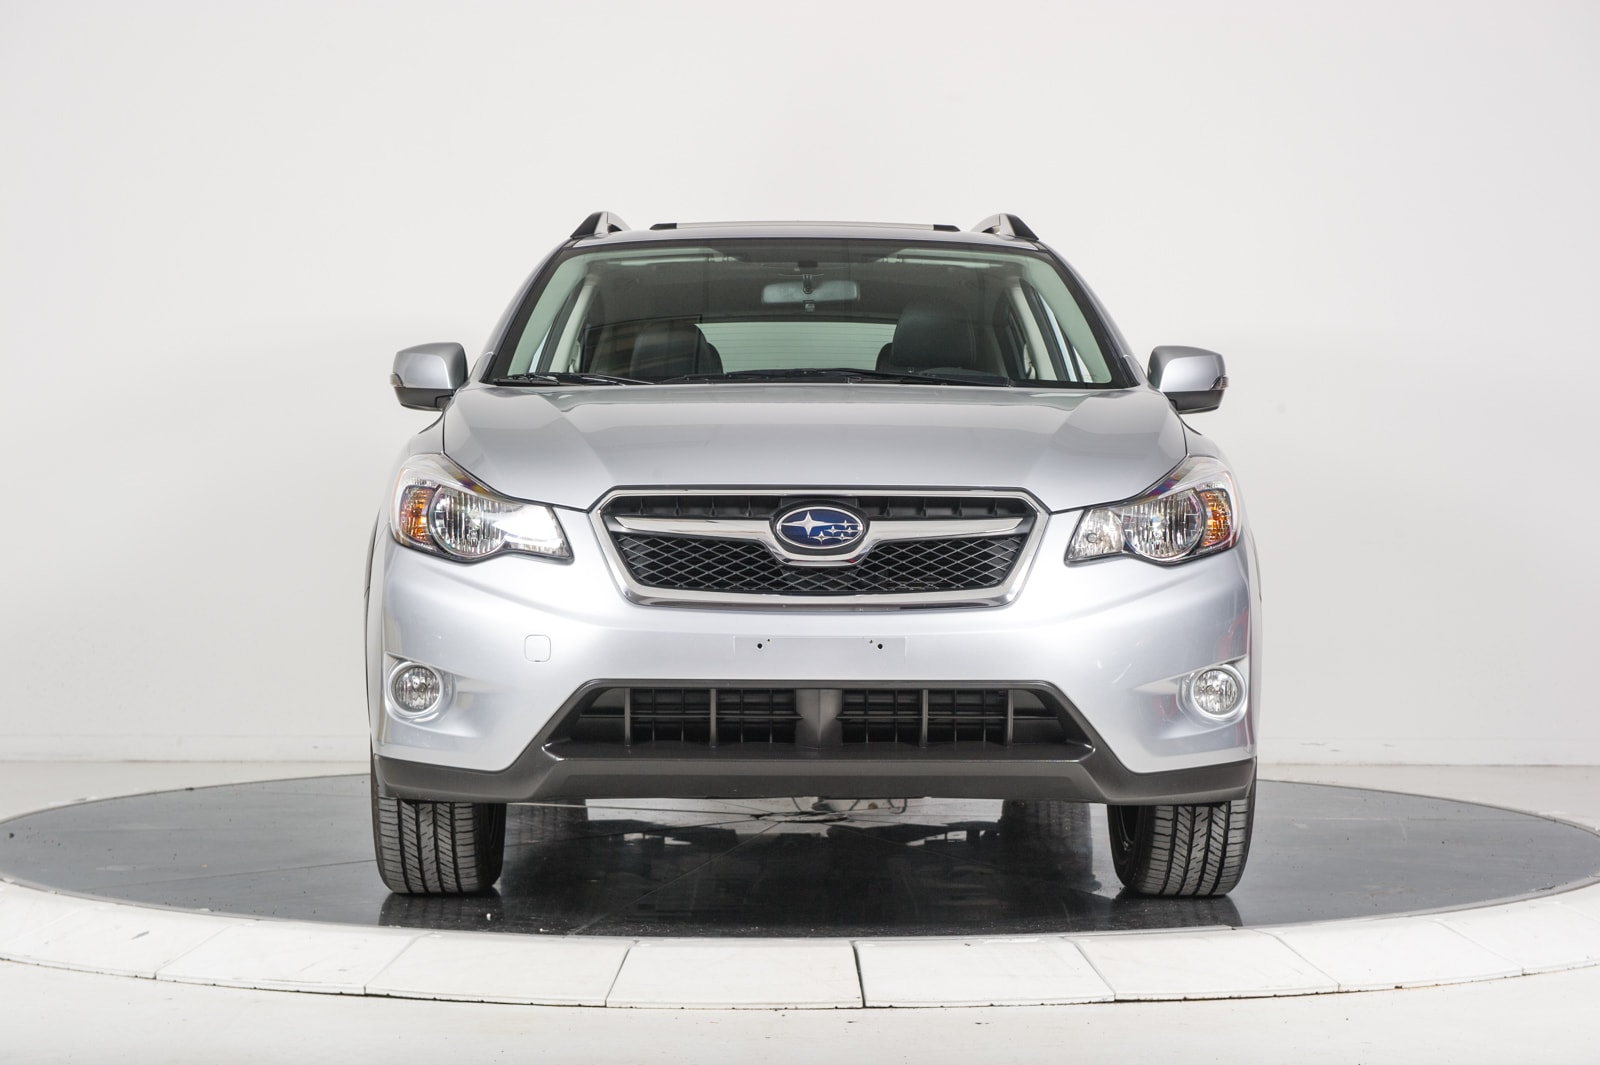 used 2014 subaru xv crosstrek hybrid for sale plainview near long island ny vin. Black Bedroom Furniture Sets. Home Design Ideas